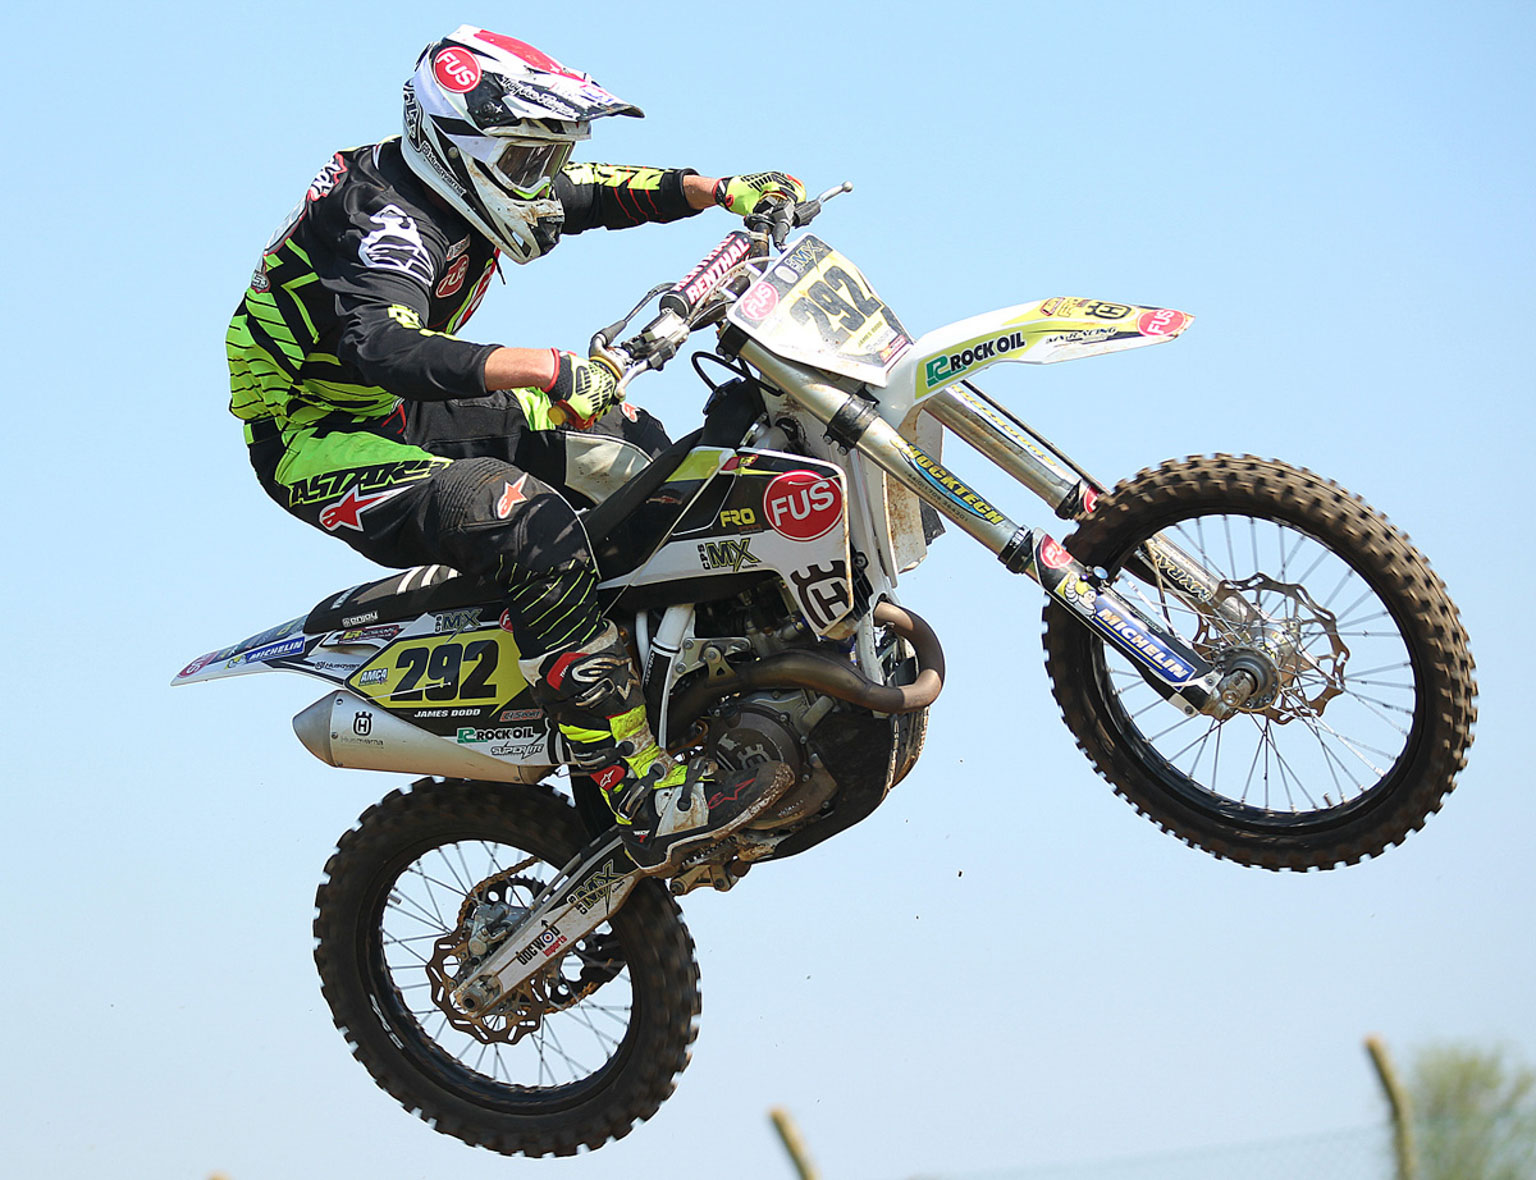 James Dodd, 3rd in MX1